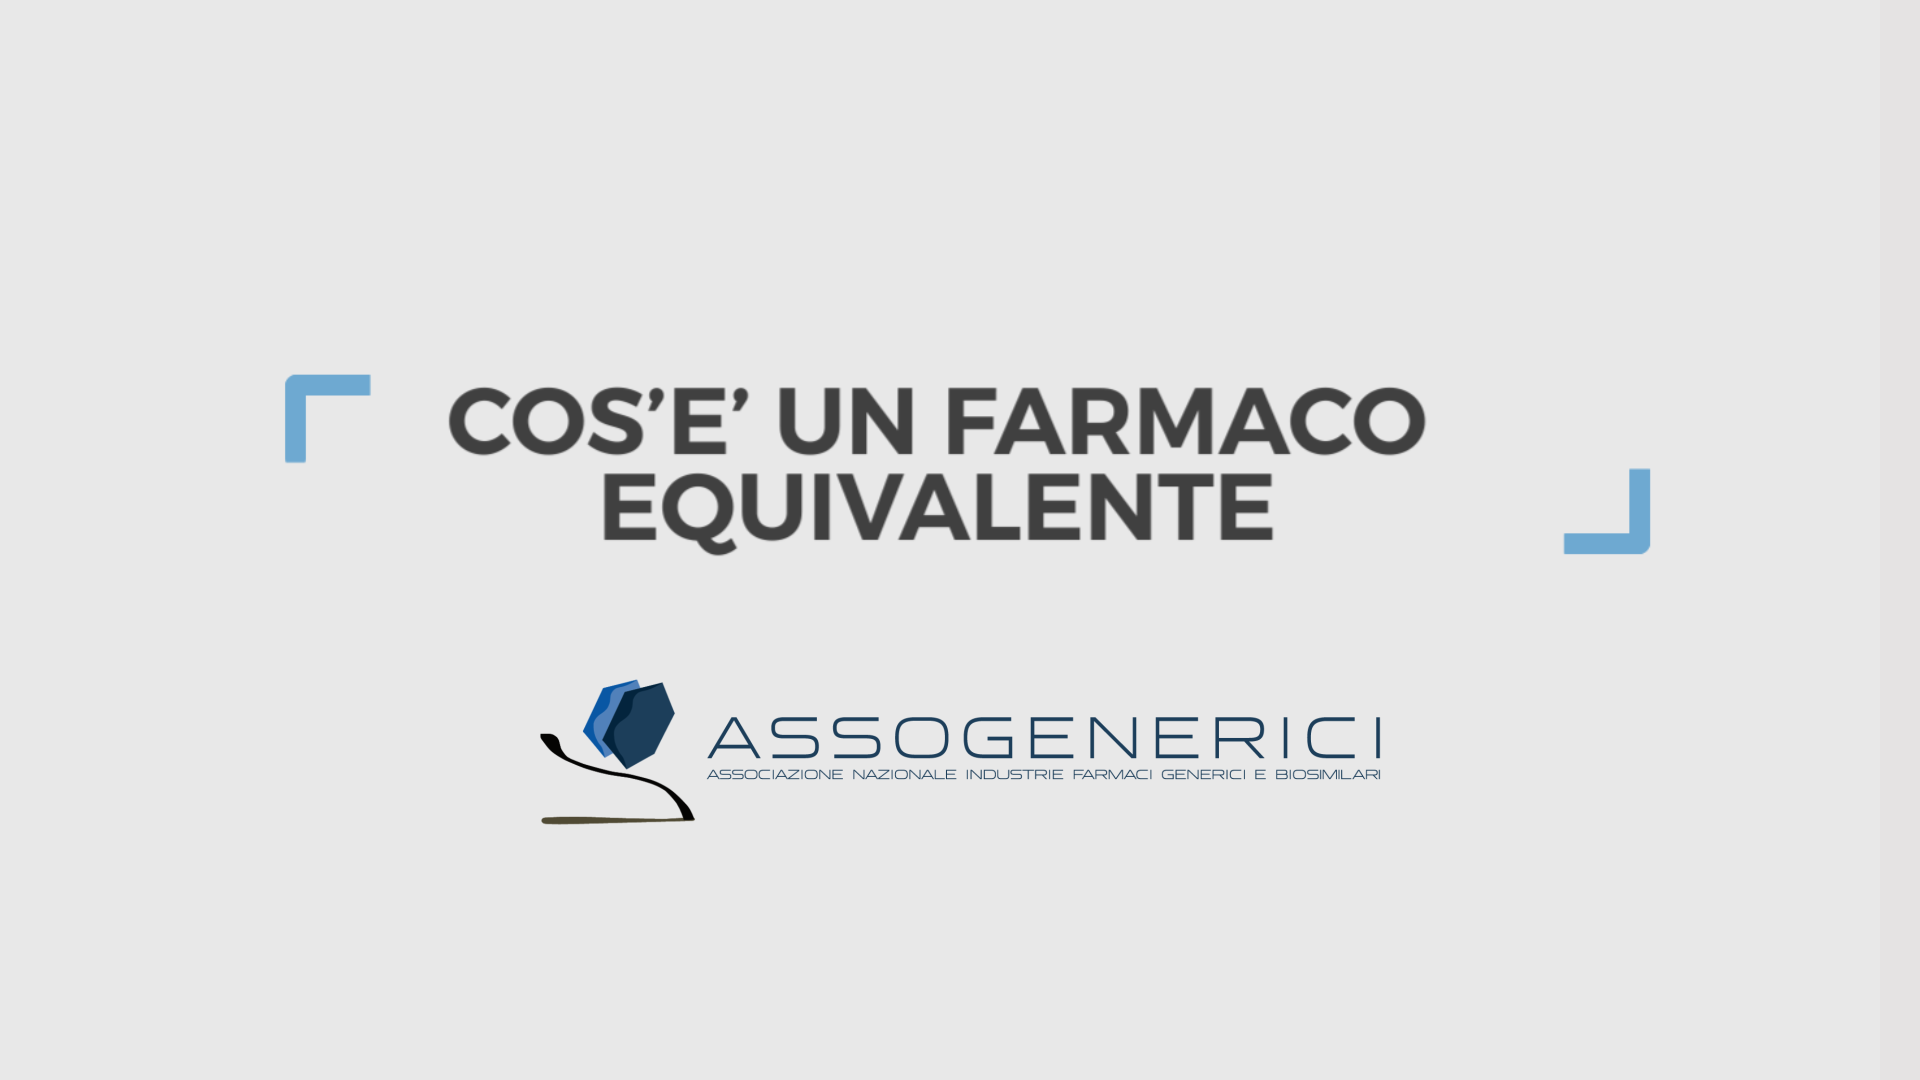 Assogenerici Copertina Video02 00322